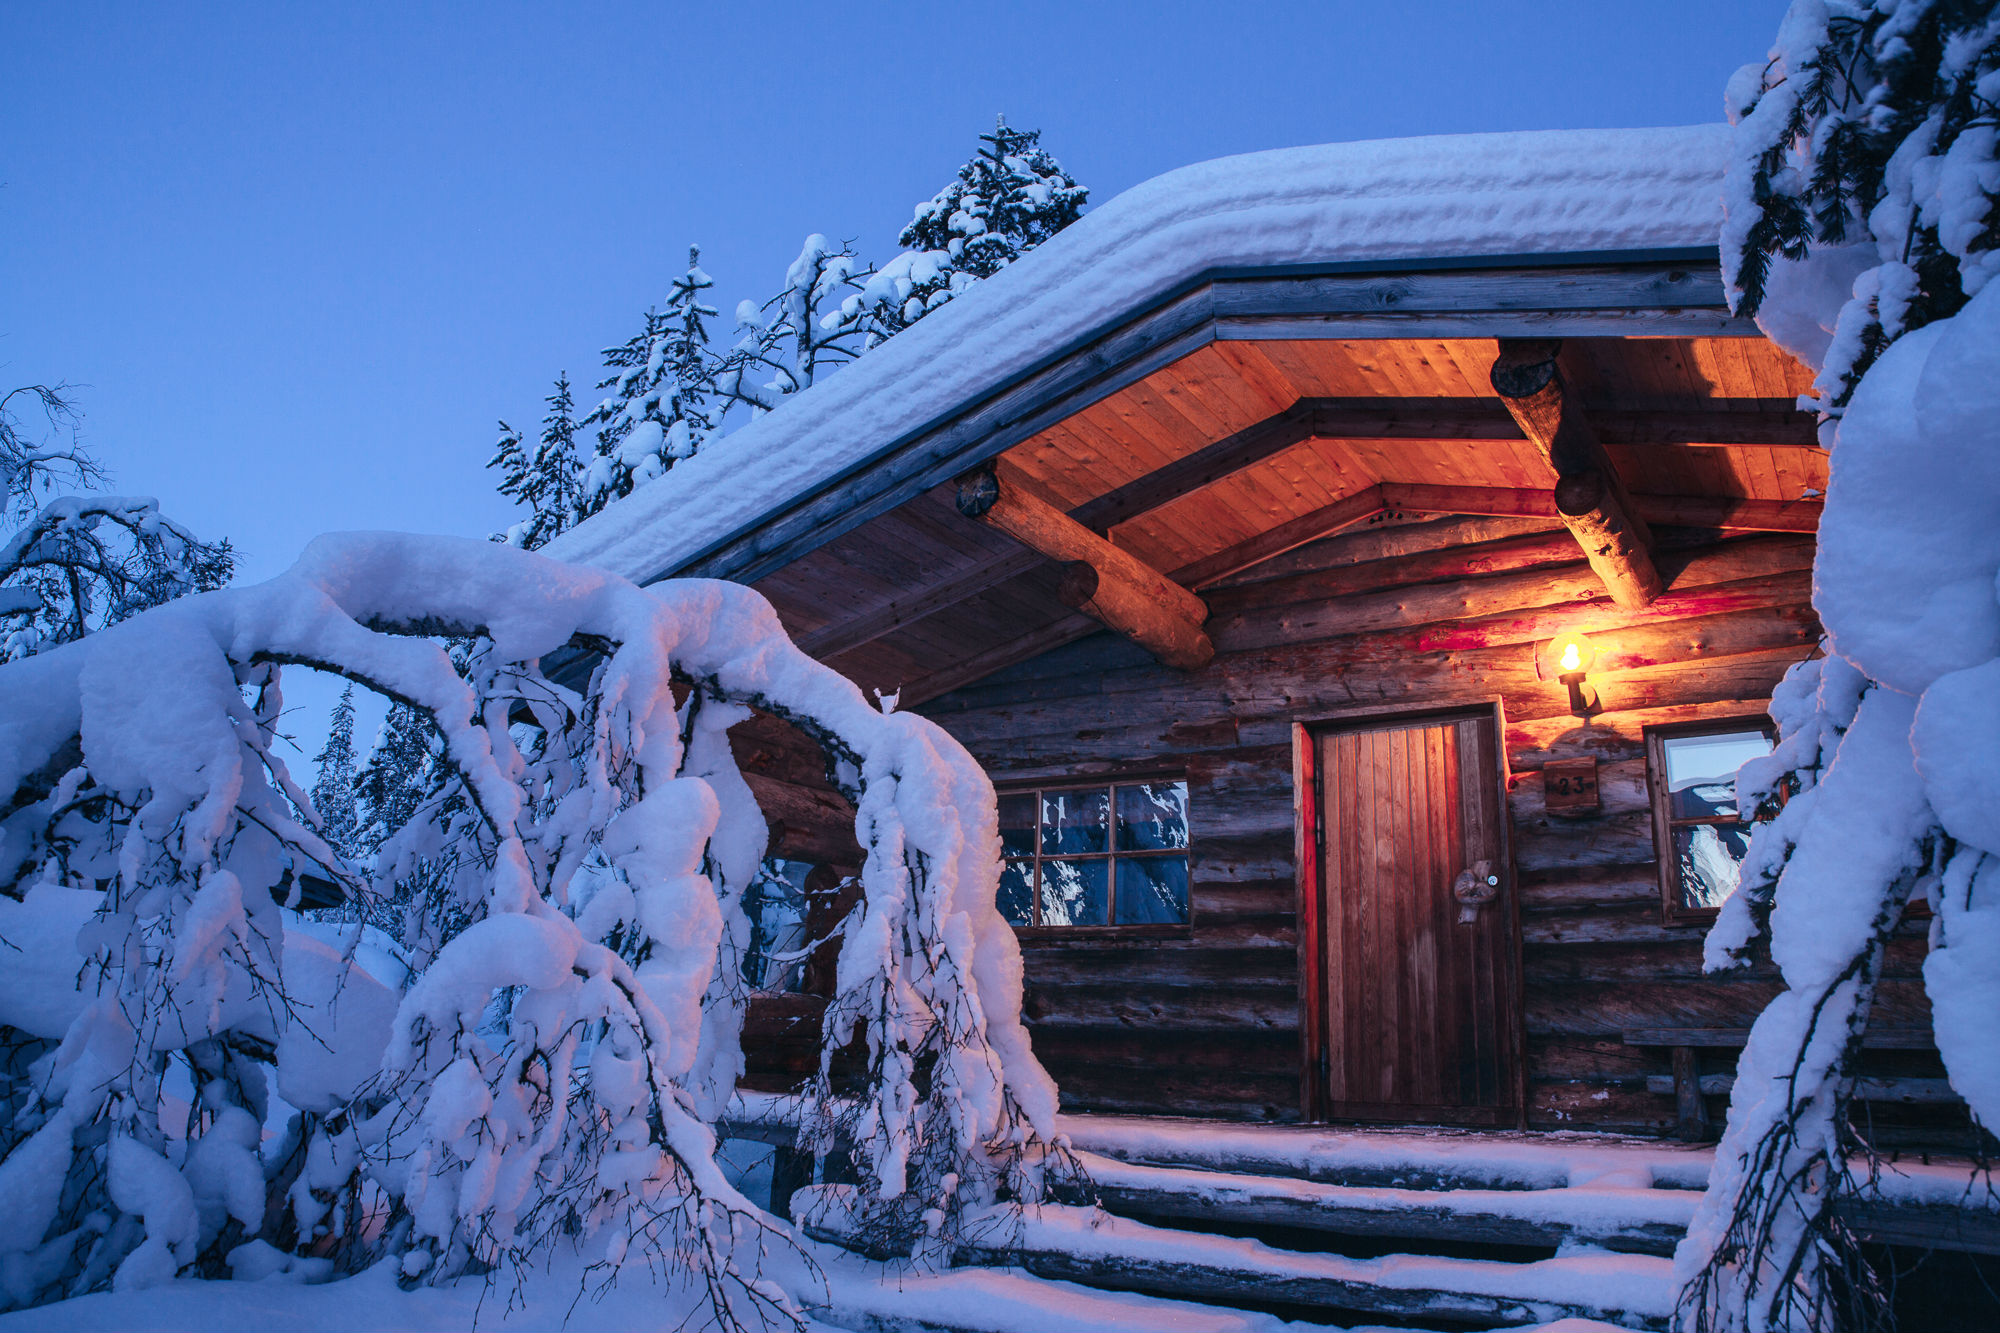 Kakslauttanen Arctic Resort - Home | Facebook